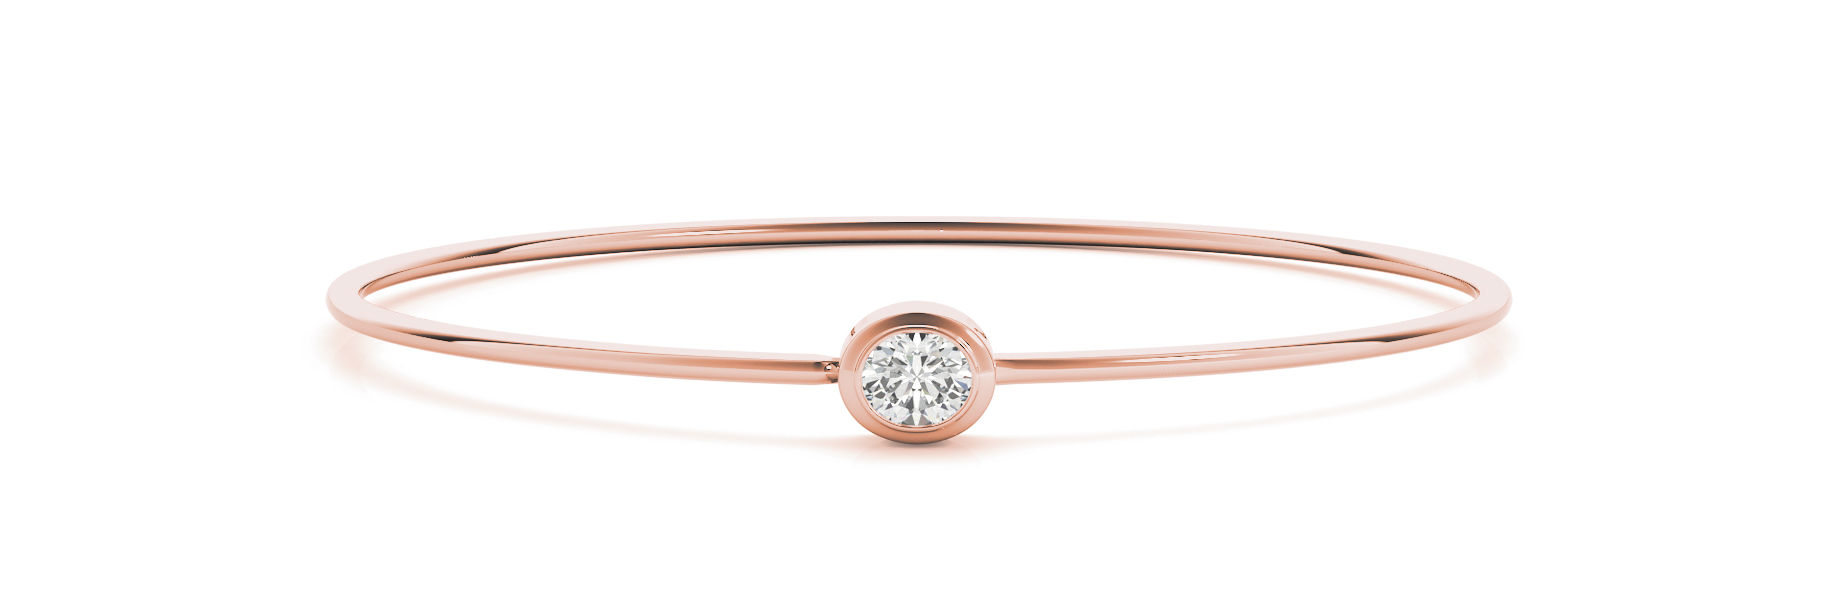 Oval Diamond Solitaire Bezel Bangle Rose Gold